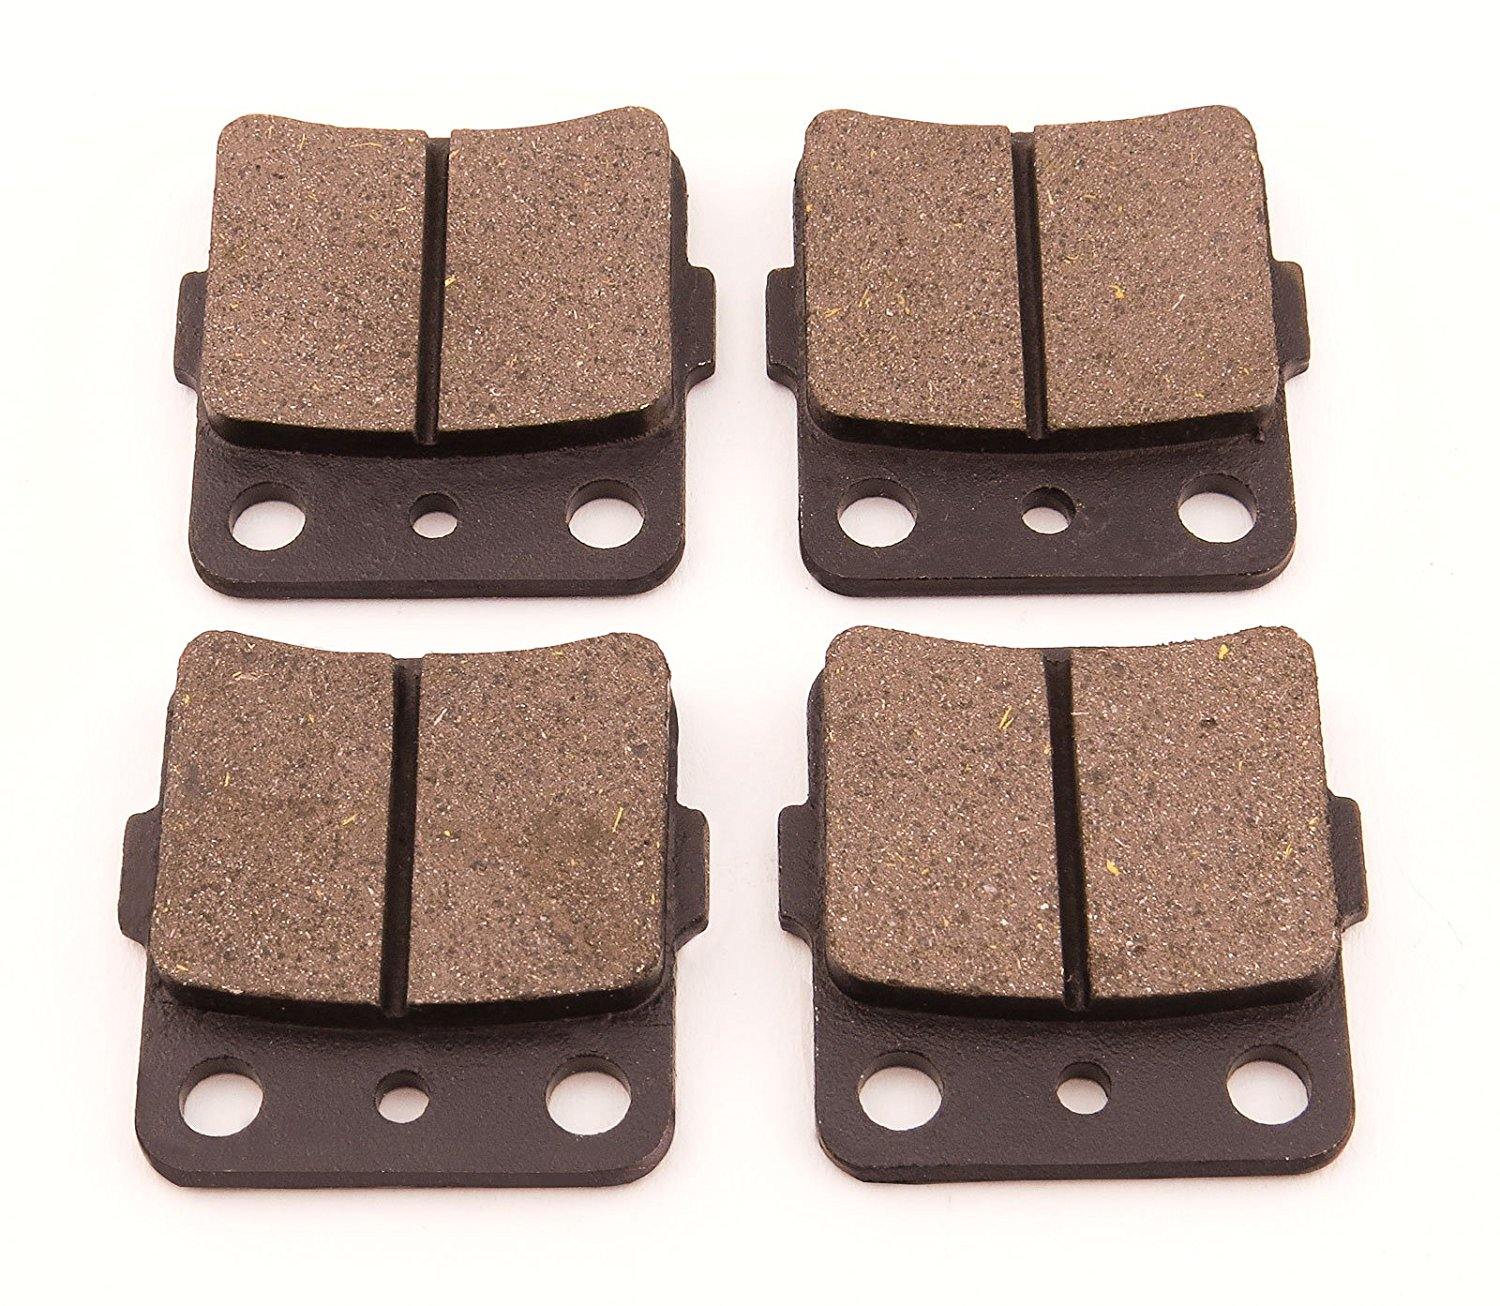 Rear Brake Pads for Suzuki ATV LTZ400F LTZ400 F QUADSPORT 2003-2008